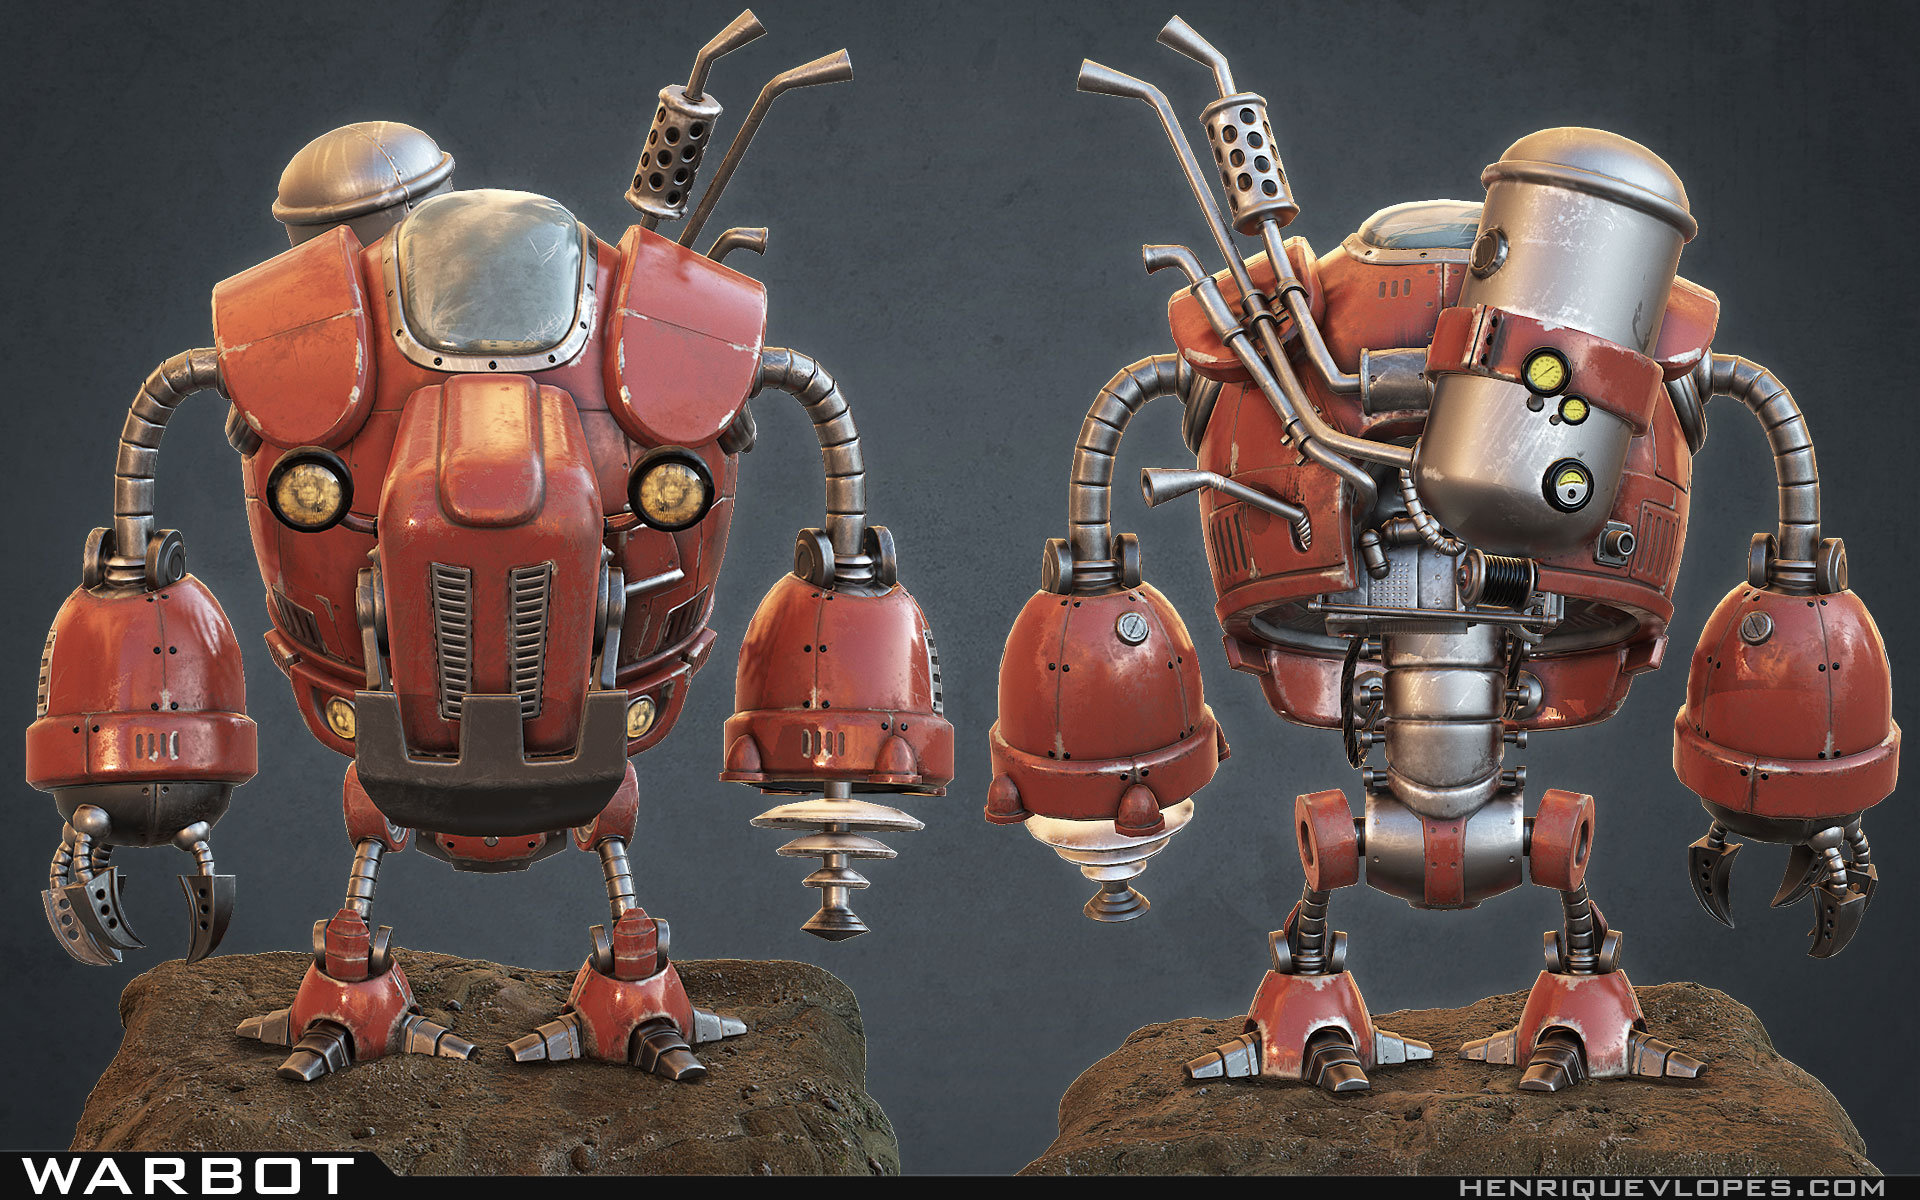 Henrique lopes warbot final 06